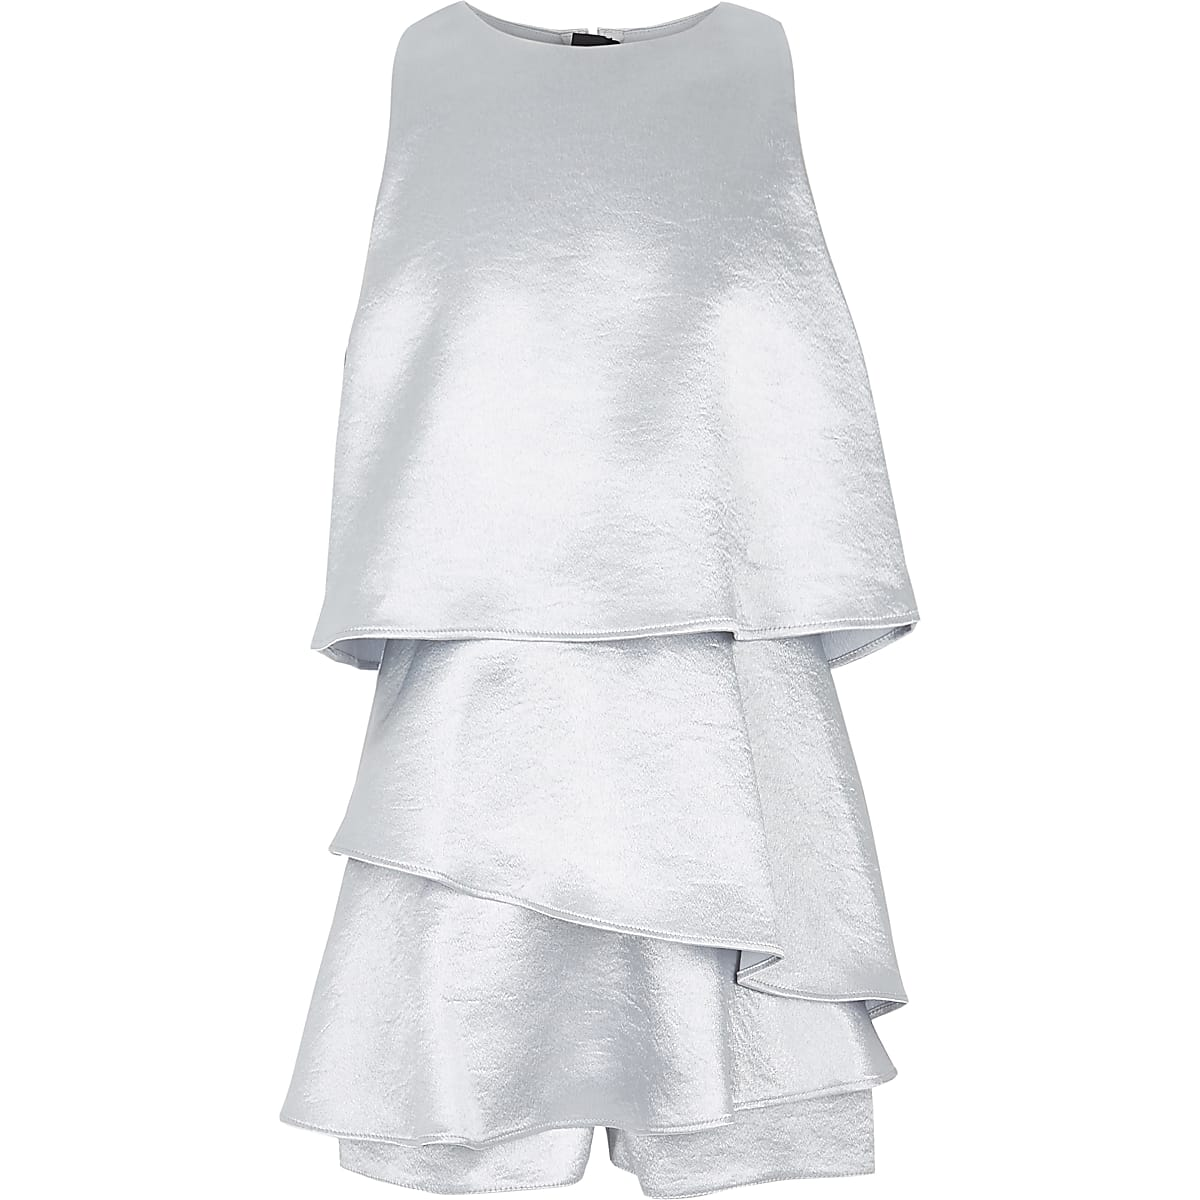 Girls silver skort playsuit